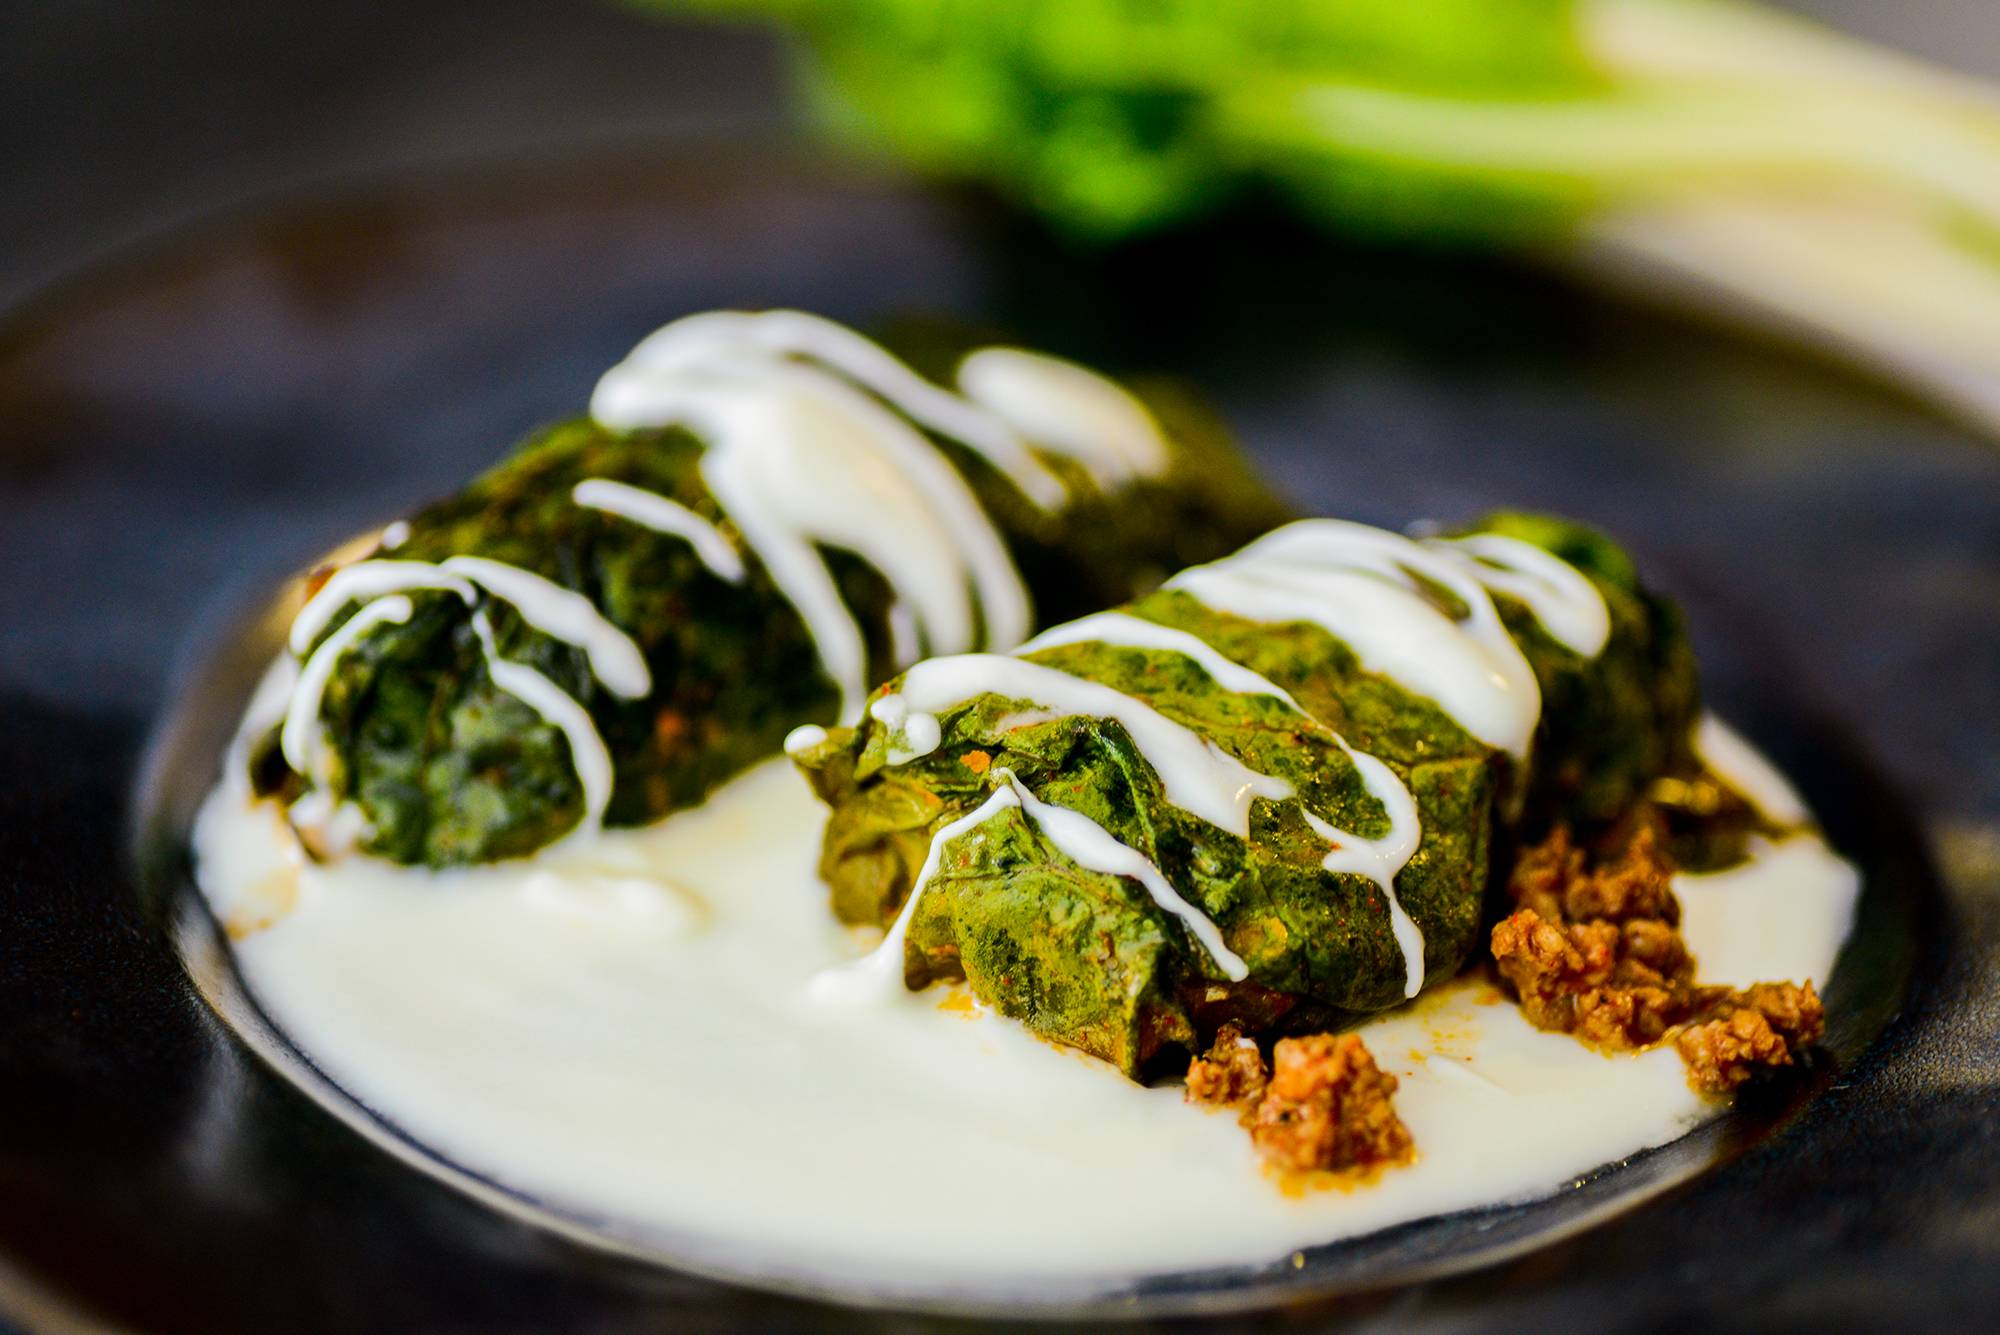 Beef-Stuffed Swiss Chard Rolls With Yogurt Sauce